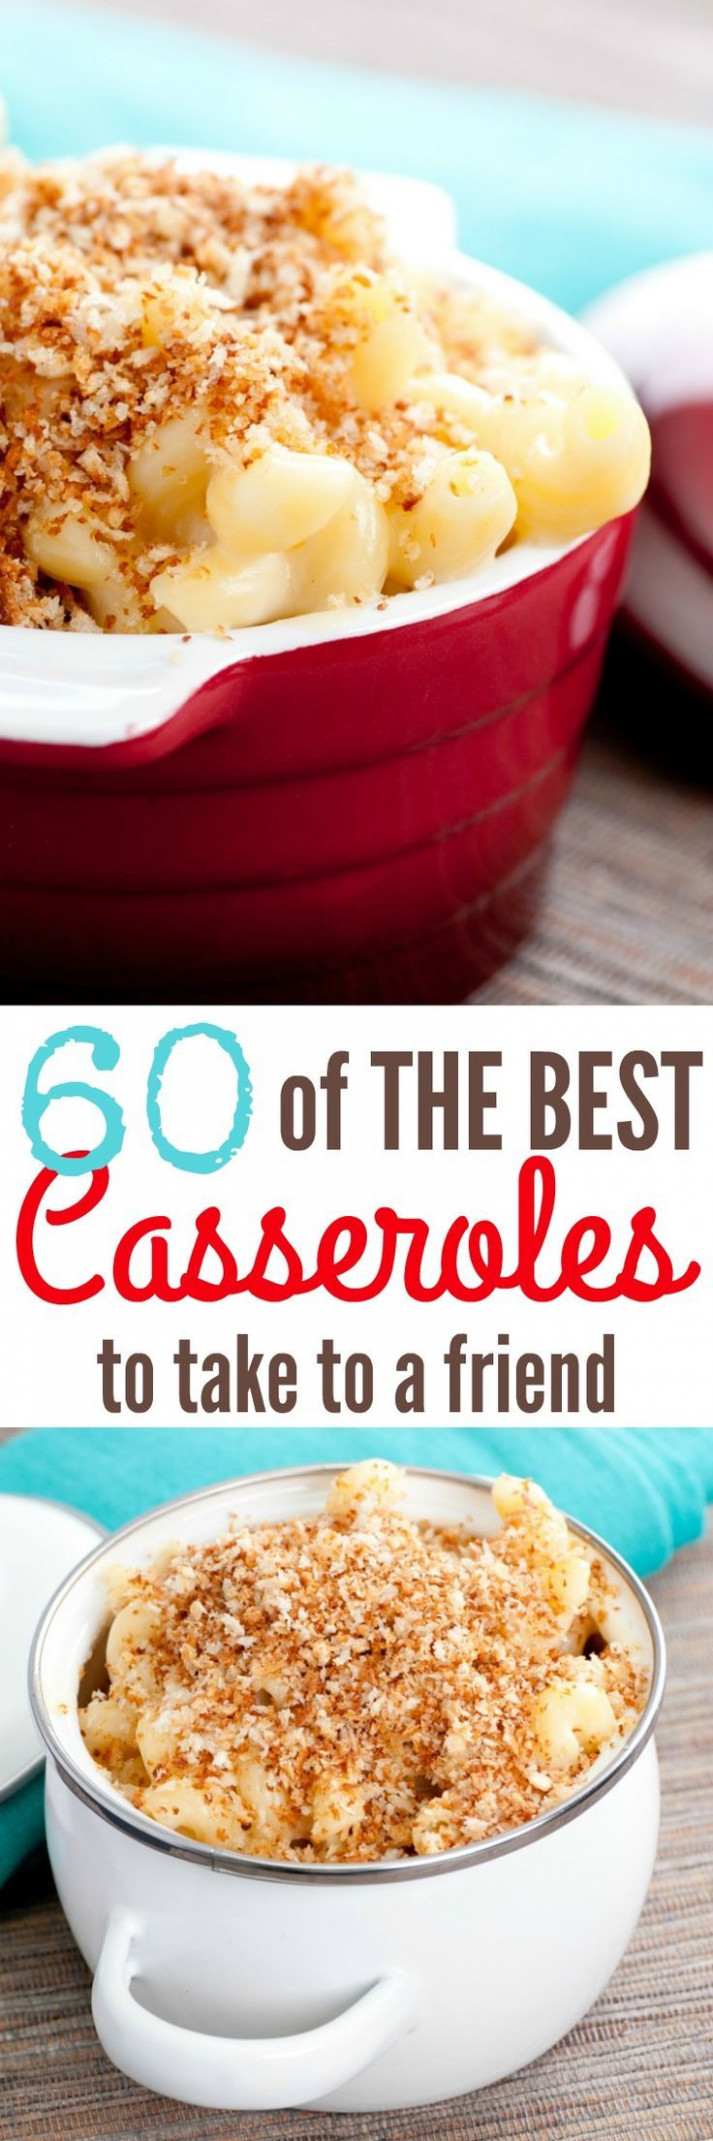 60 of the Best Casseroles to Take to a Friend! | Blogger ..